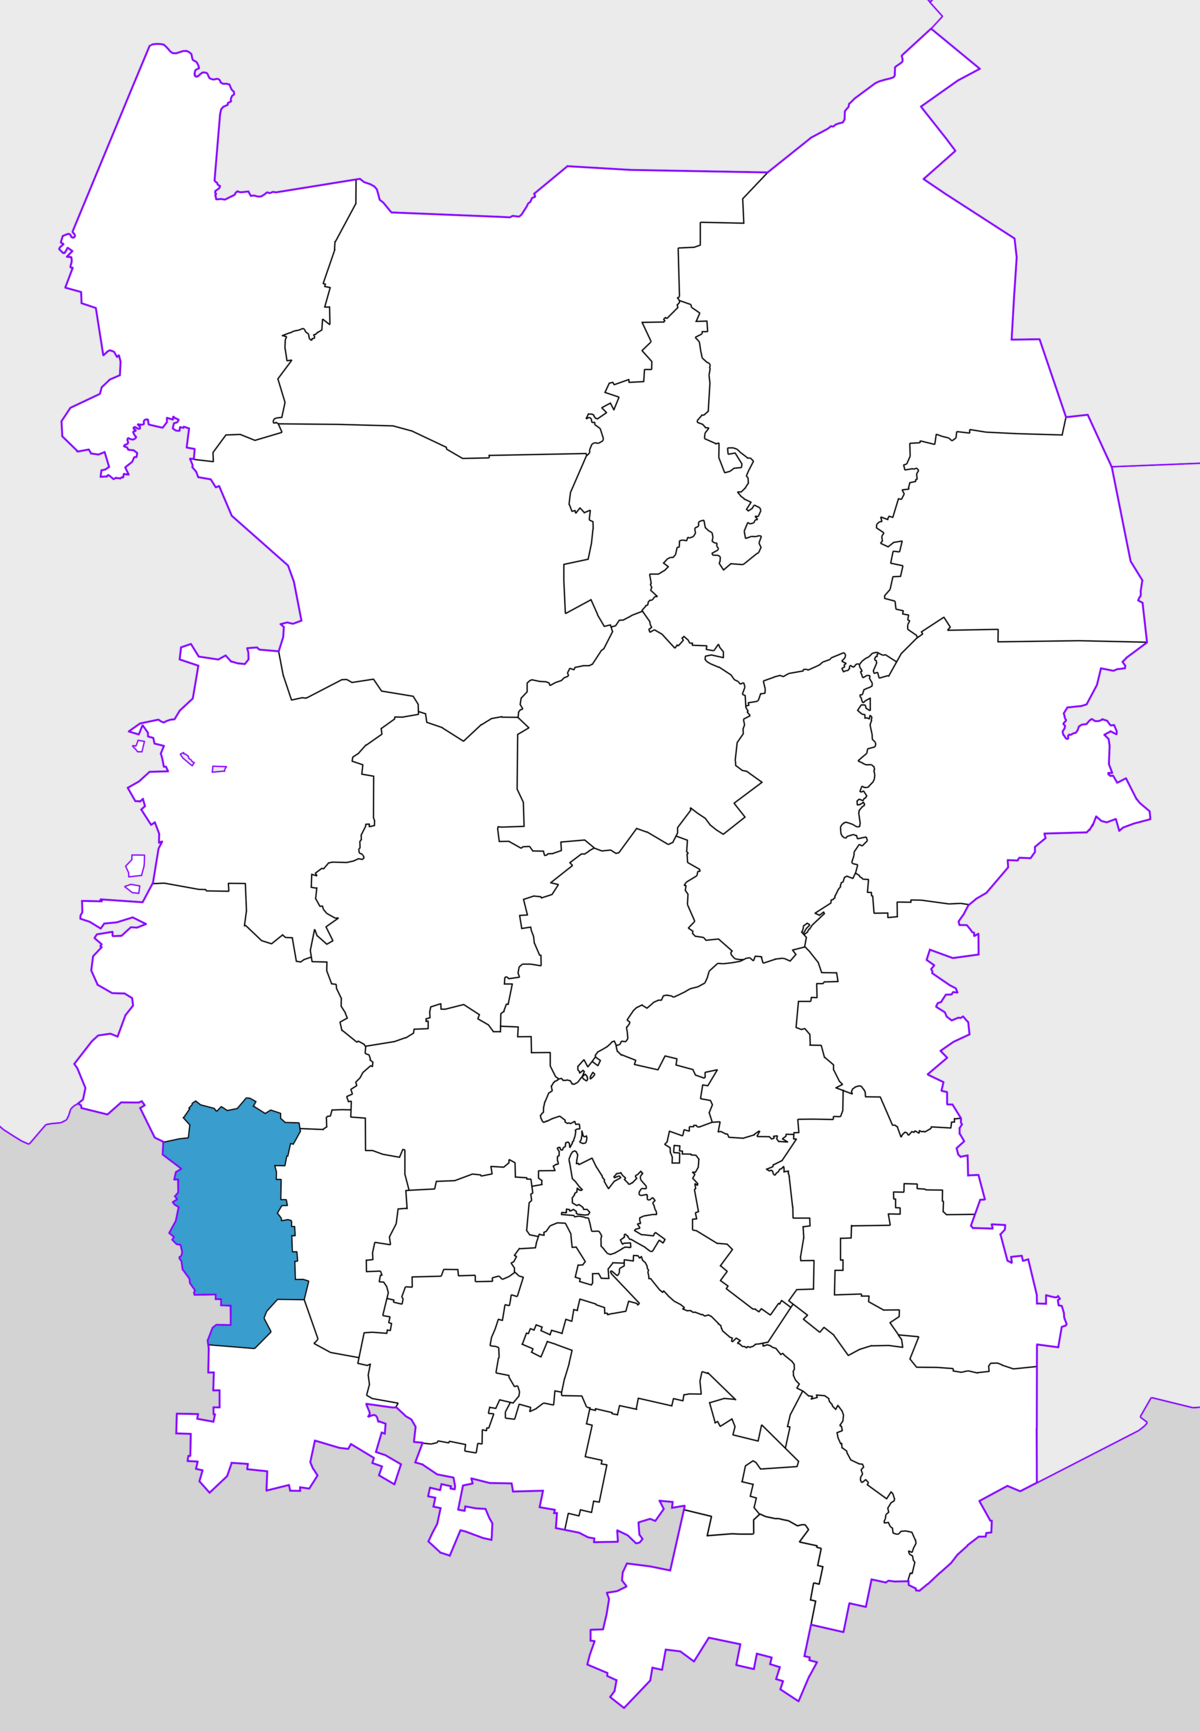 What is the federal district of Omsk, and where is it located 58